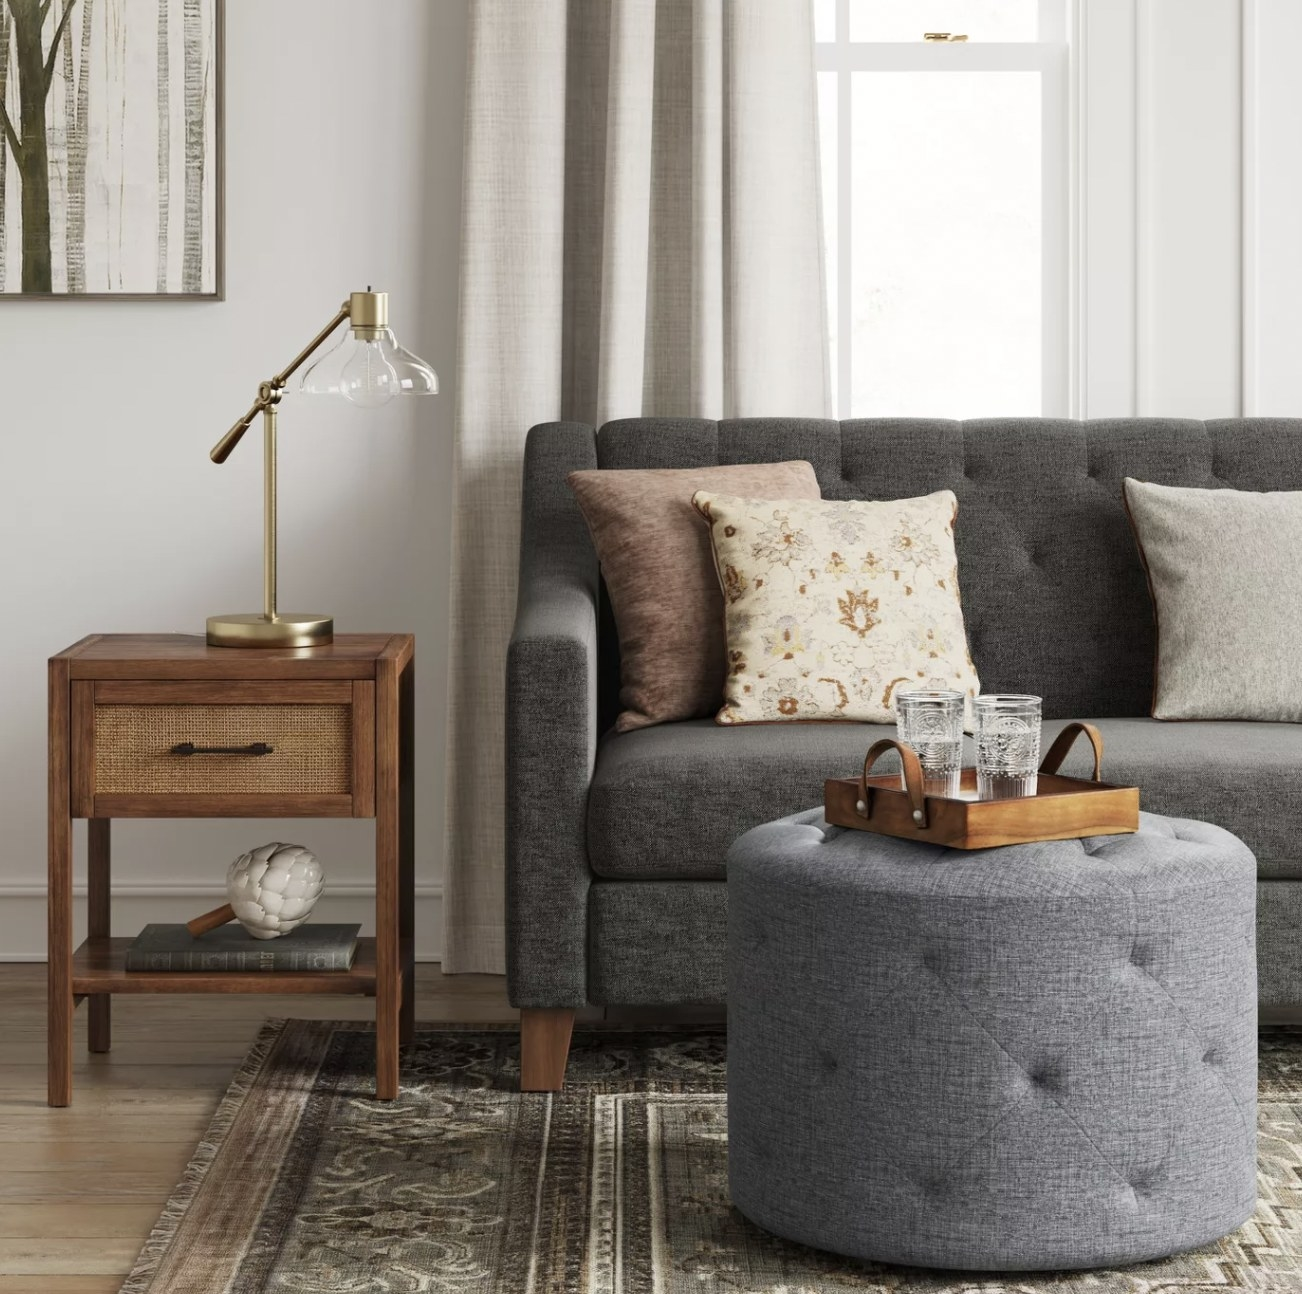 a round grey tufted ottoman in front of a couch, acting as a coffee table